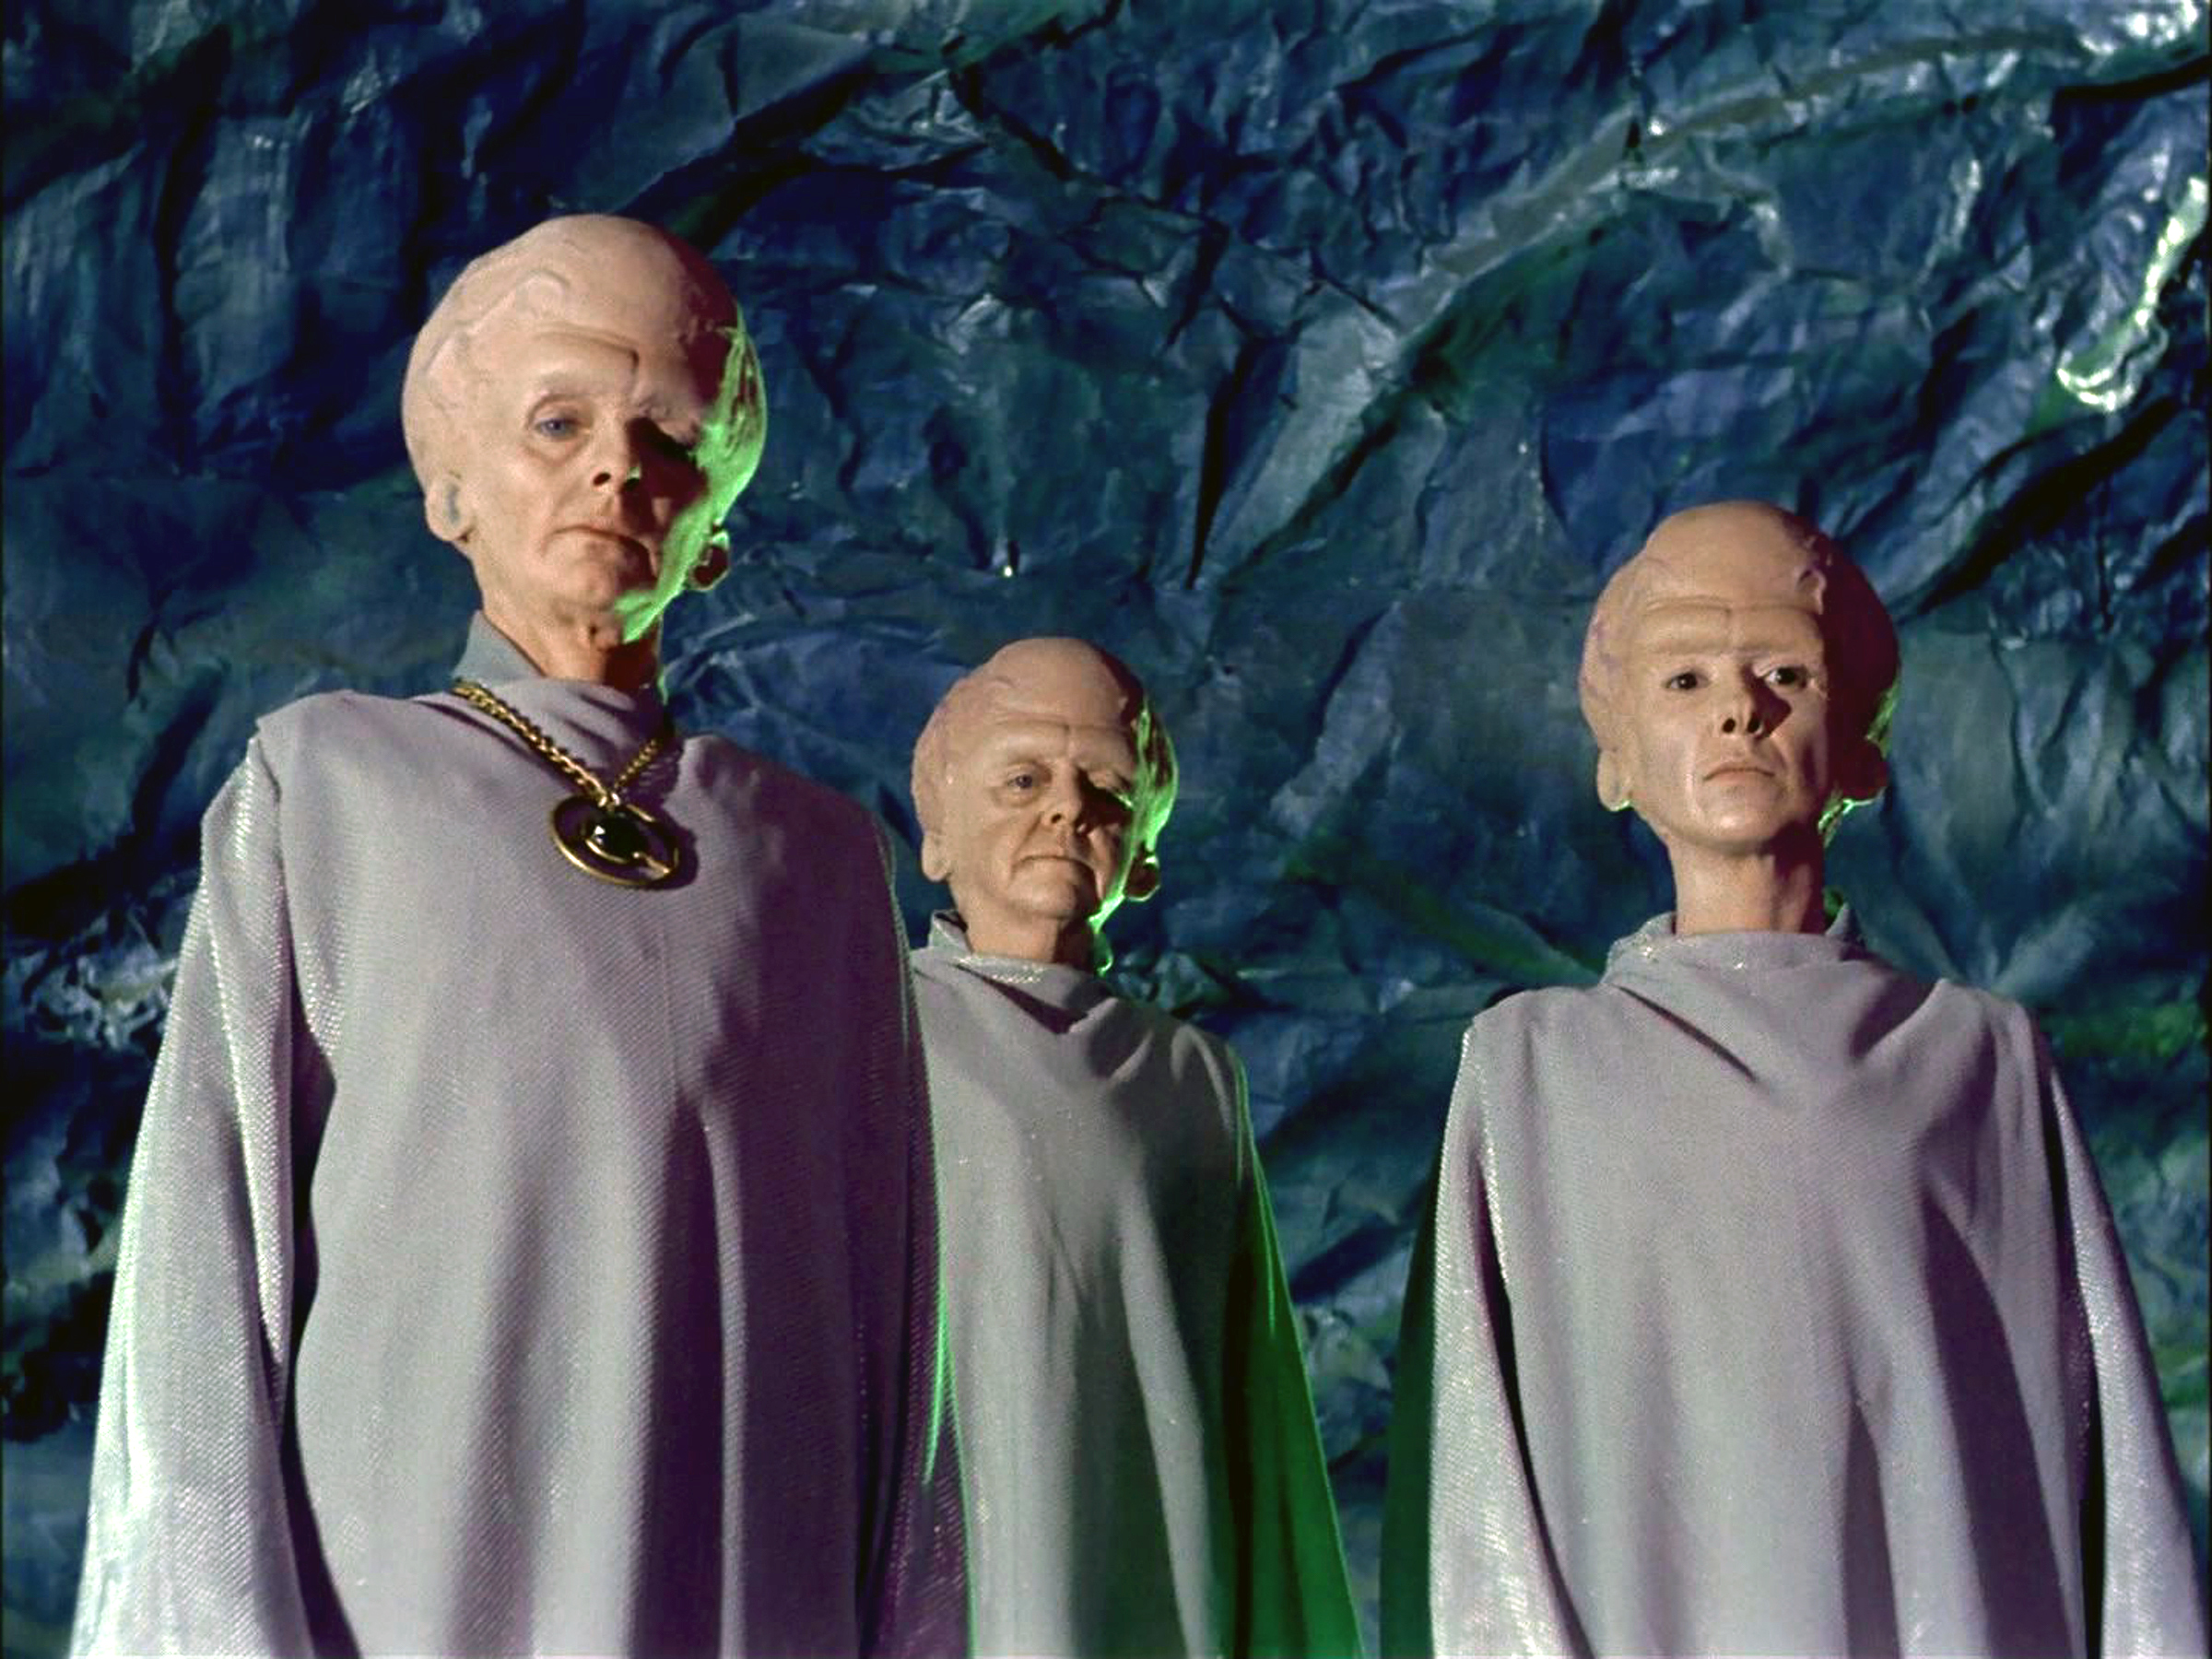 Meg Wyllie as The Keeper, Georgia Schmidt as First Talosian and Serena Sande as Second Talosian in the Star Trek: The Original Series, broadcast Oct. 4, 1988.